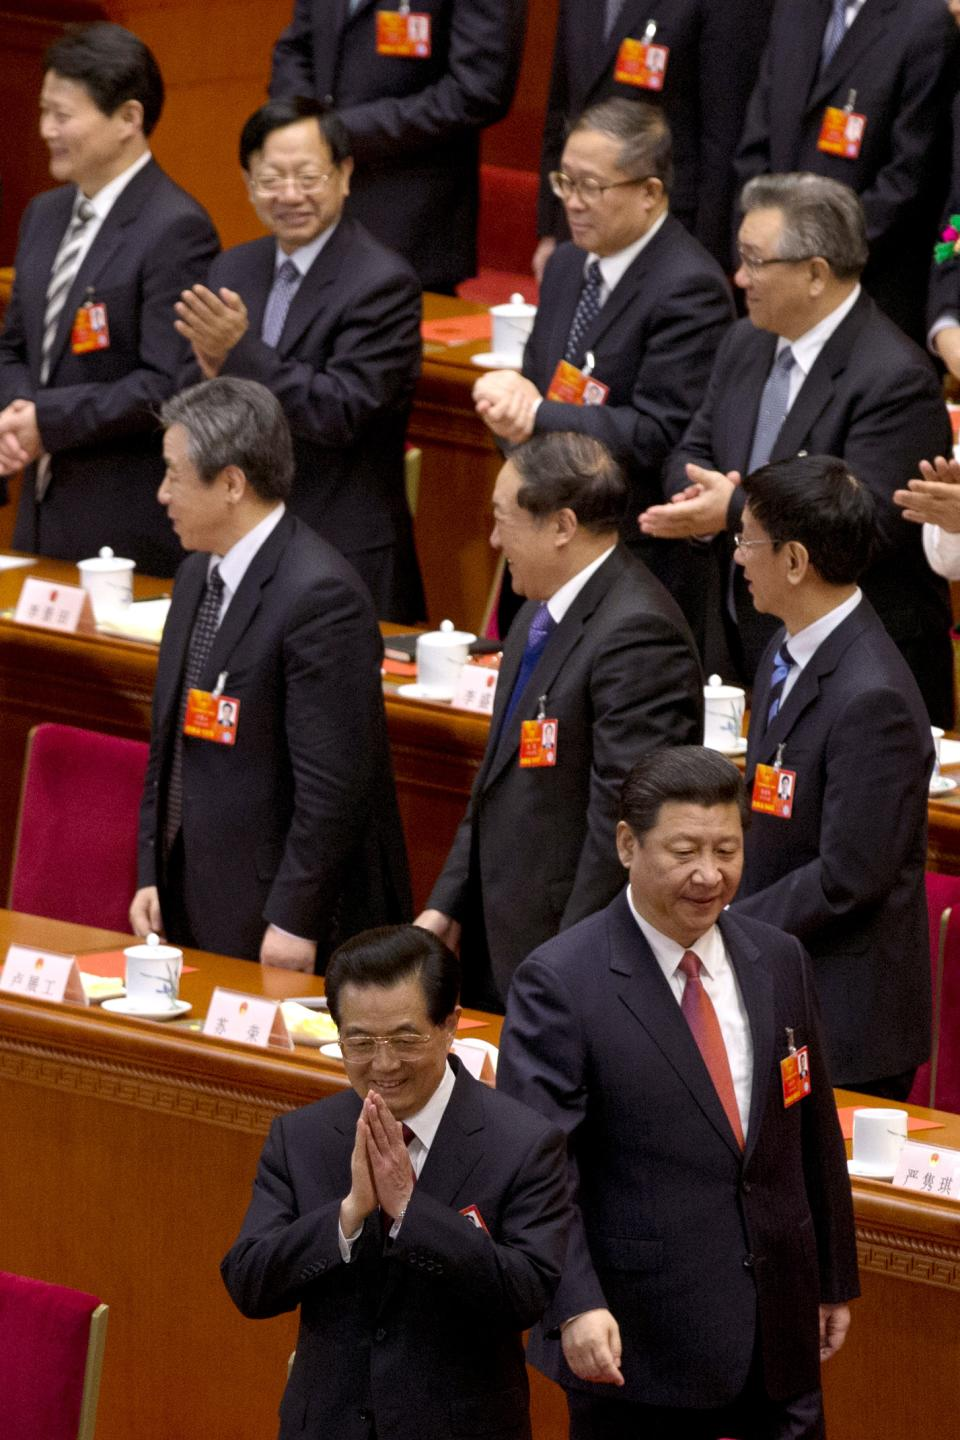 Outgoing Chinese President Hu Jintao, bottom center, gestures near Chinese Communist Party chief and incoming-President Xi Jinping at right as they attend a plenary session of the National People's Congress where delegates are expected to elect Xi officially as president at the Great Hall of the People in Beijing Thursday, March 14, 2013. (AP Photo/Ng Han Guan)